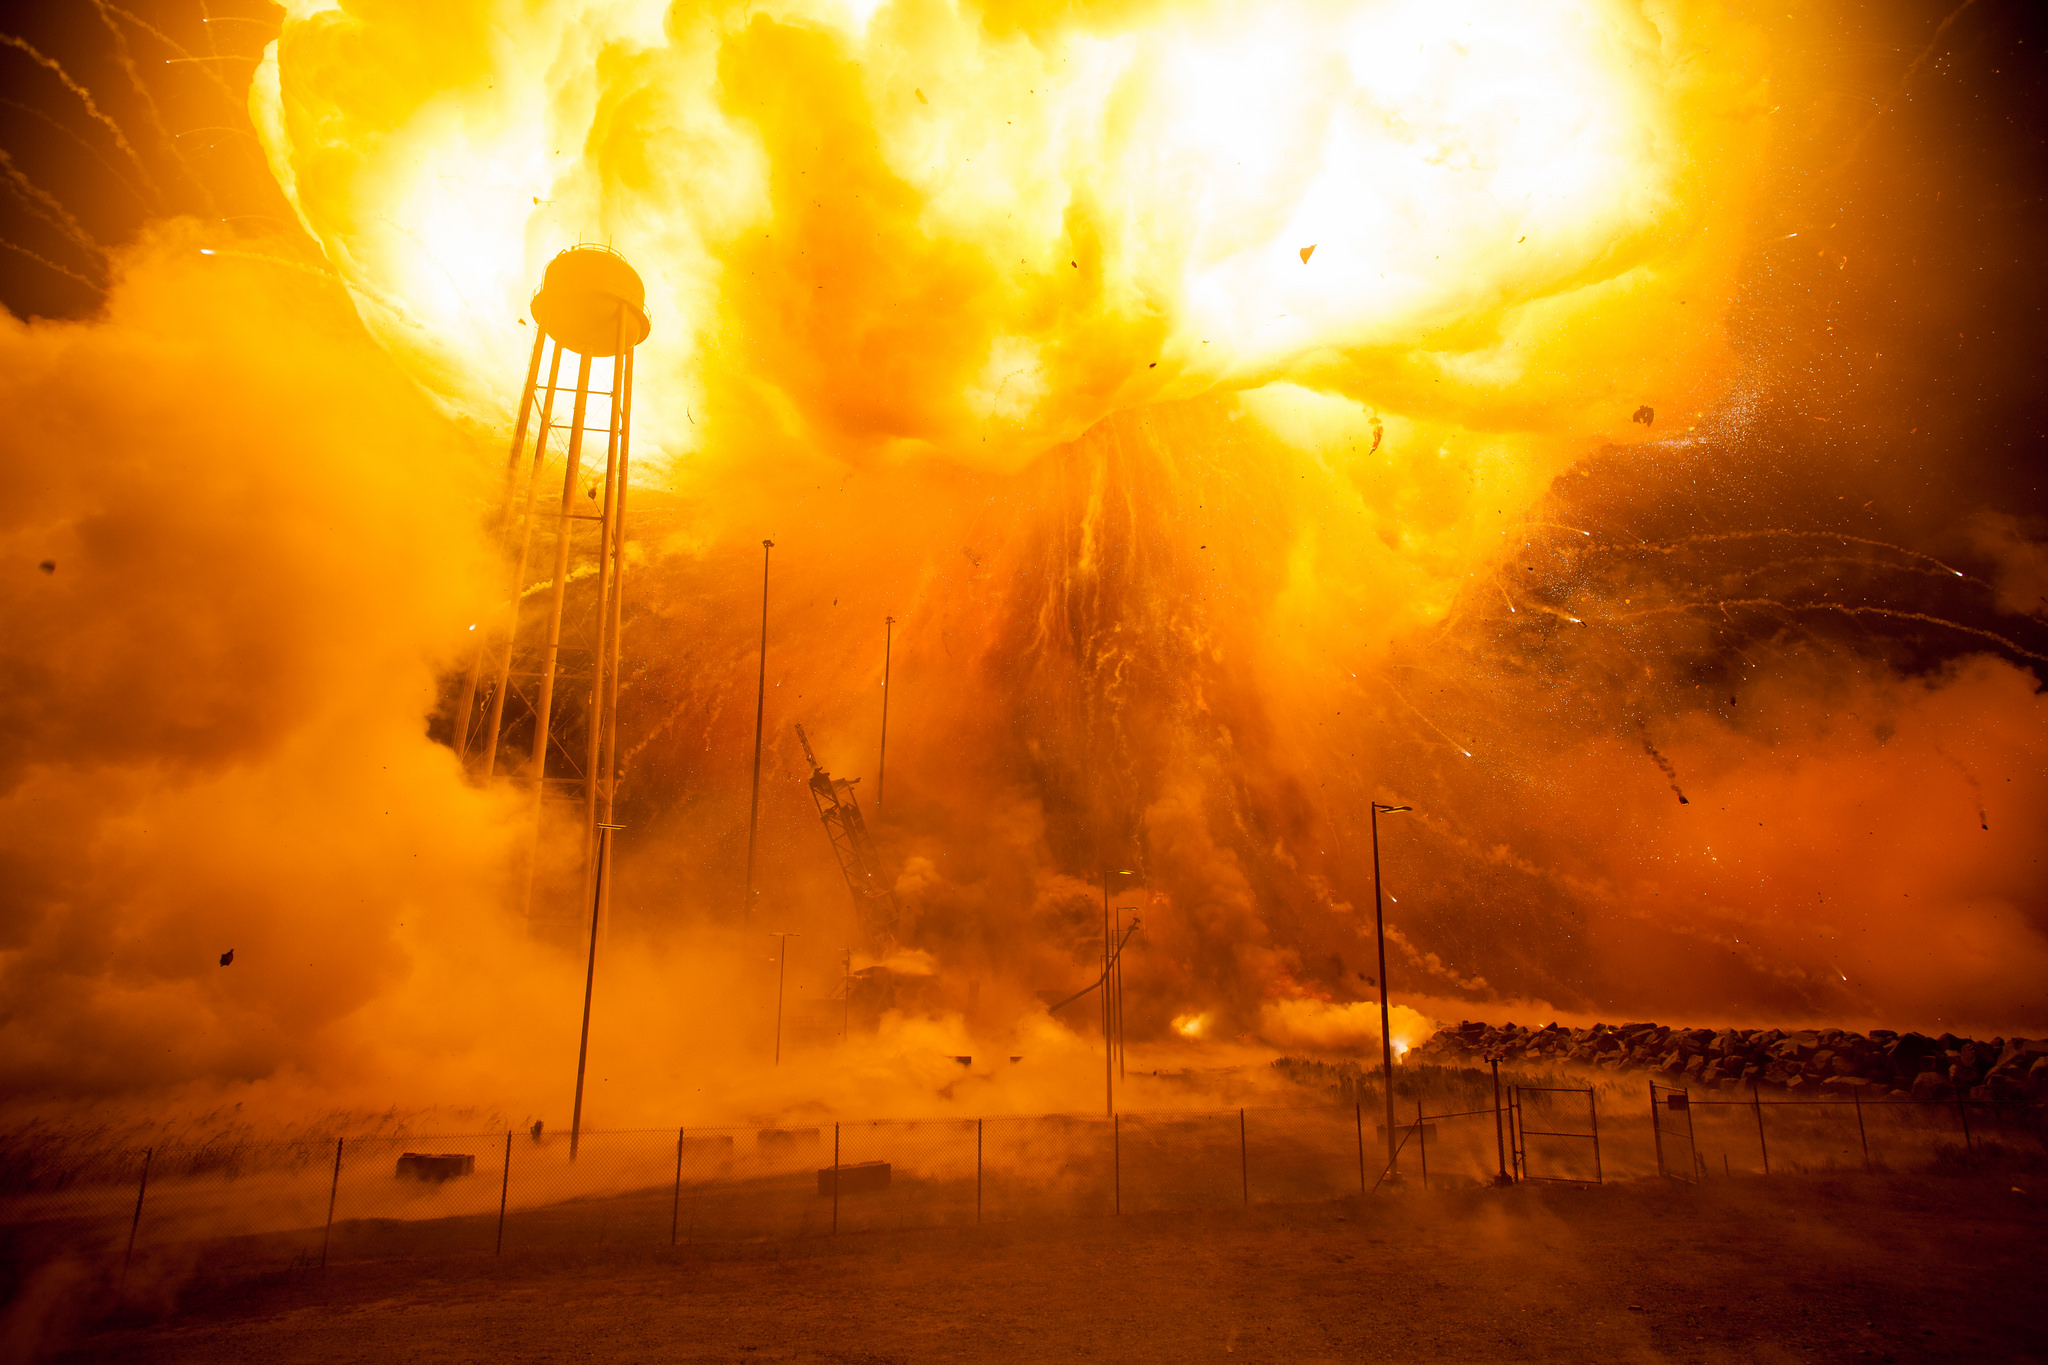 Intense Antares Rocket Explosion Shown in Newly Released NASA Photos